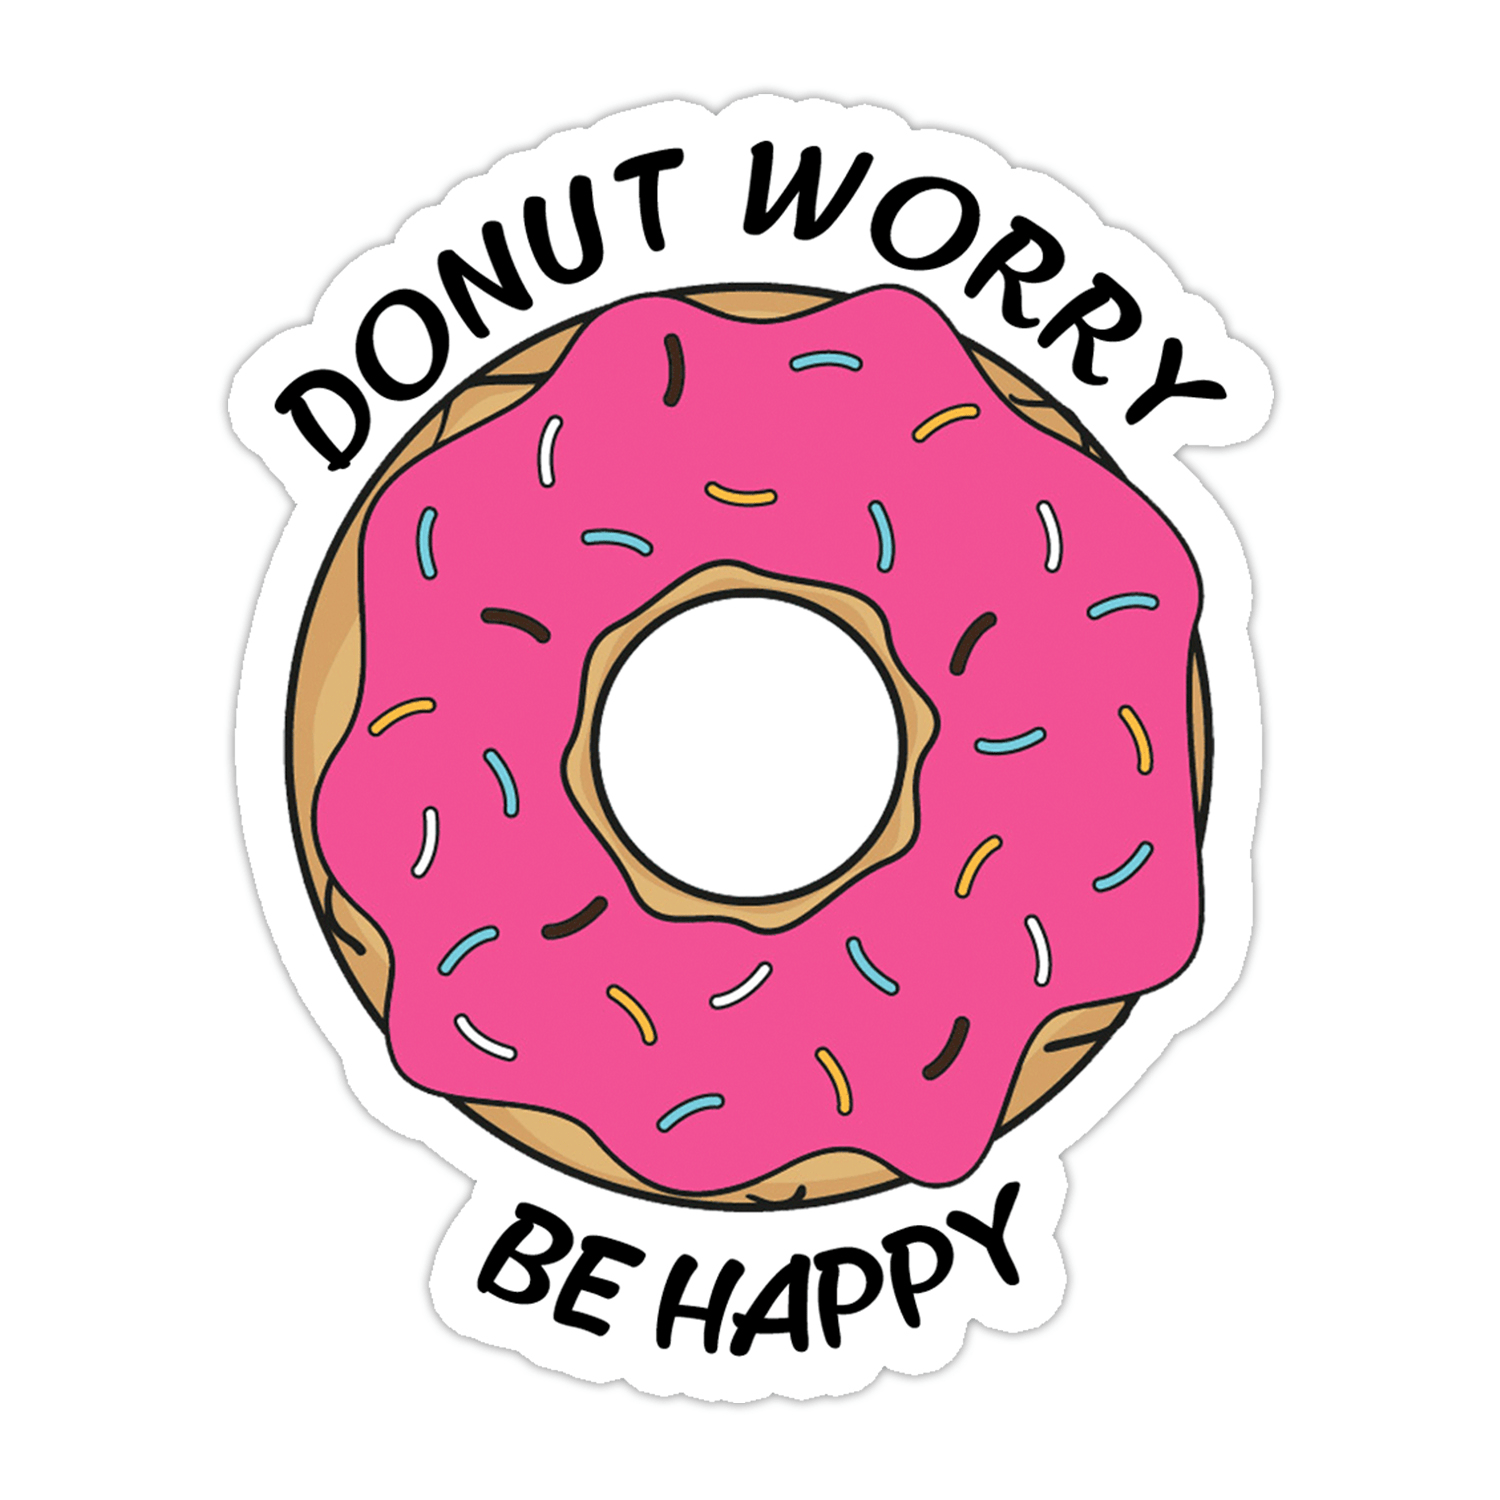 Funny donut worry be happy sticker